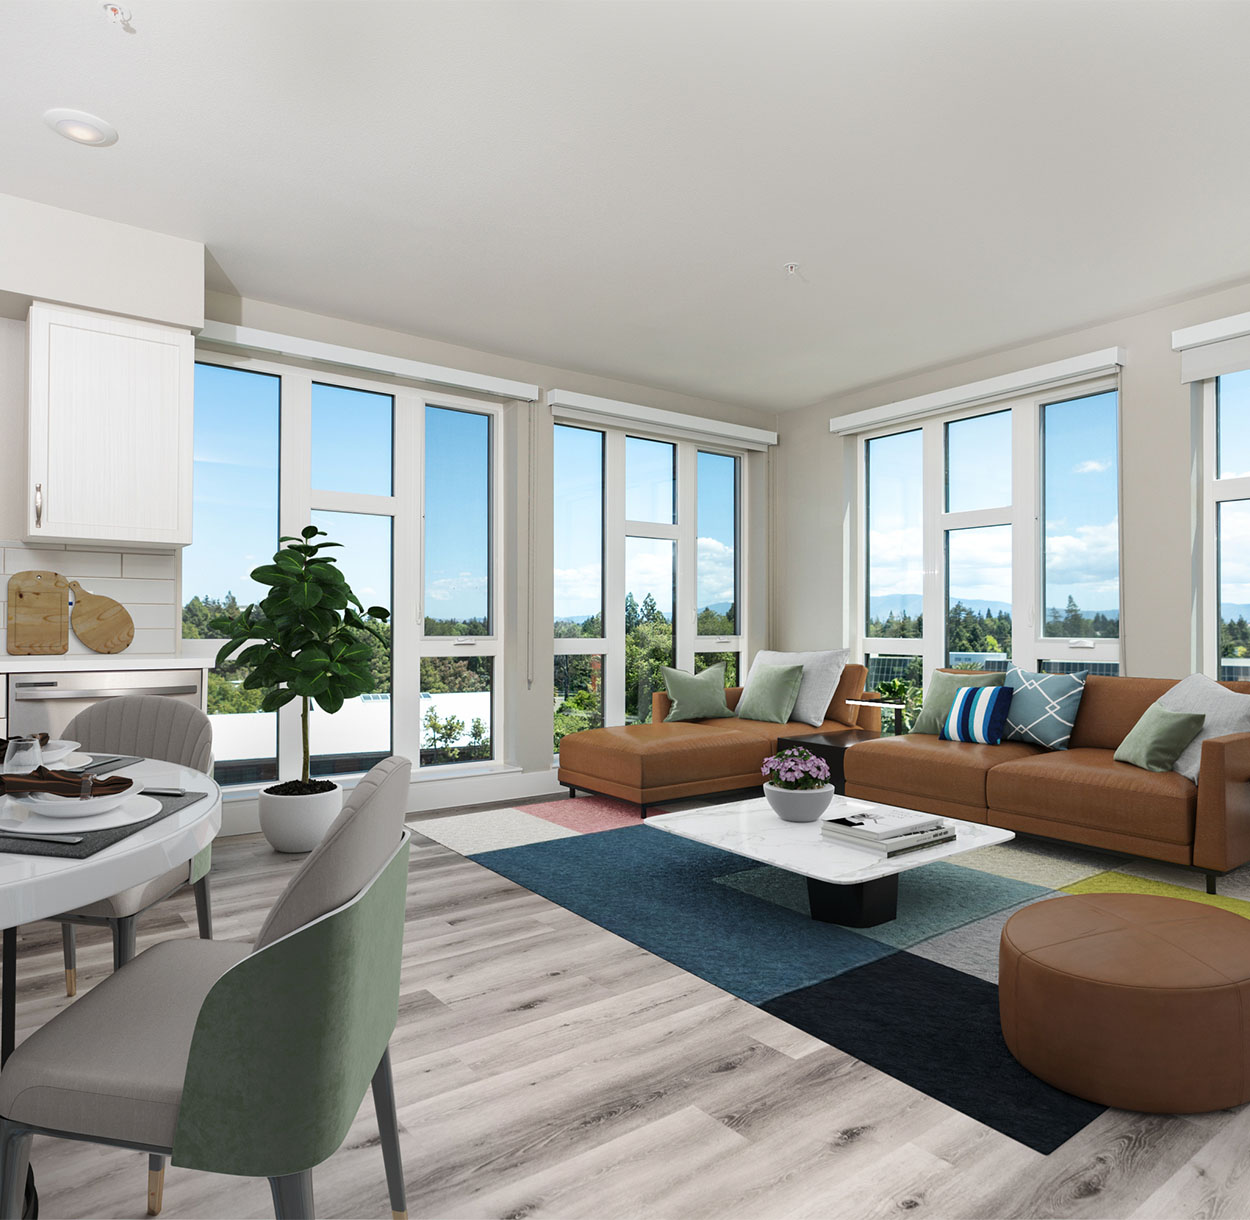 1250 Lakeside apartment living area with wood floor, modern sectional couch, and floor to ceiling windows.